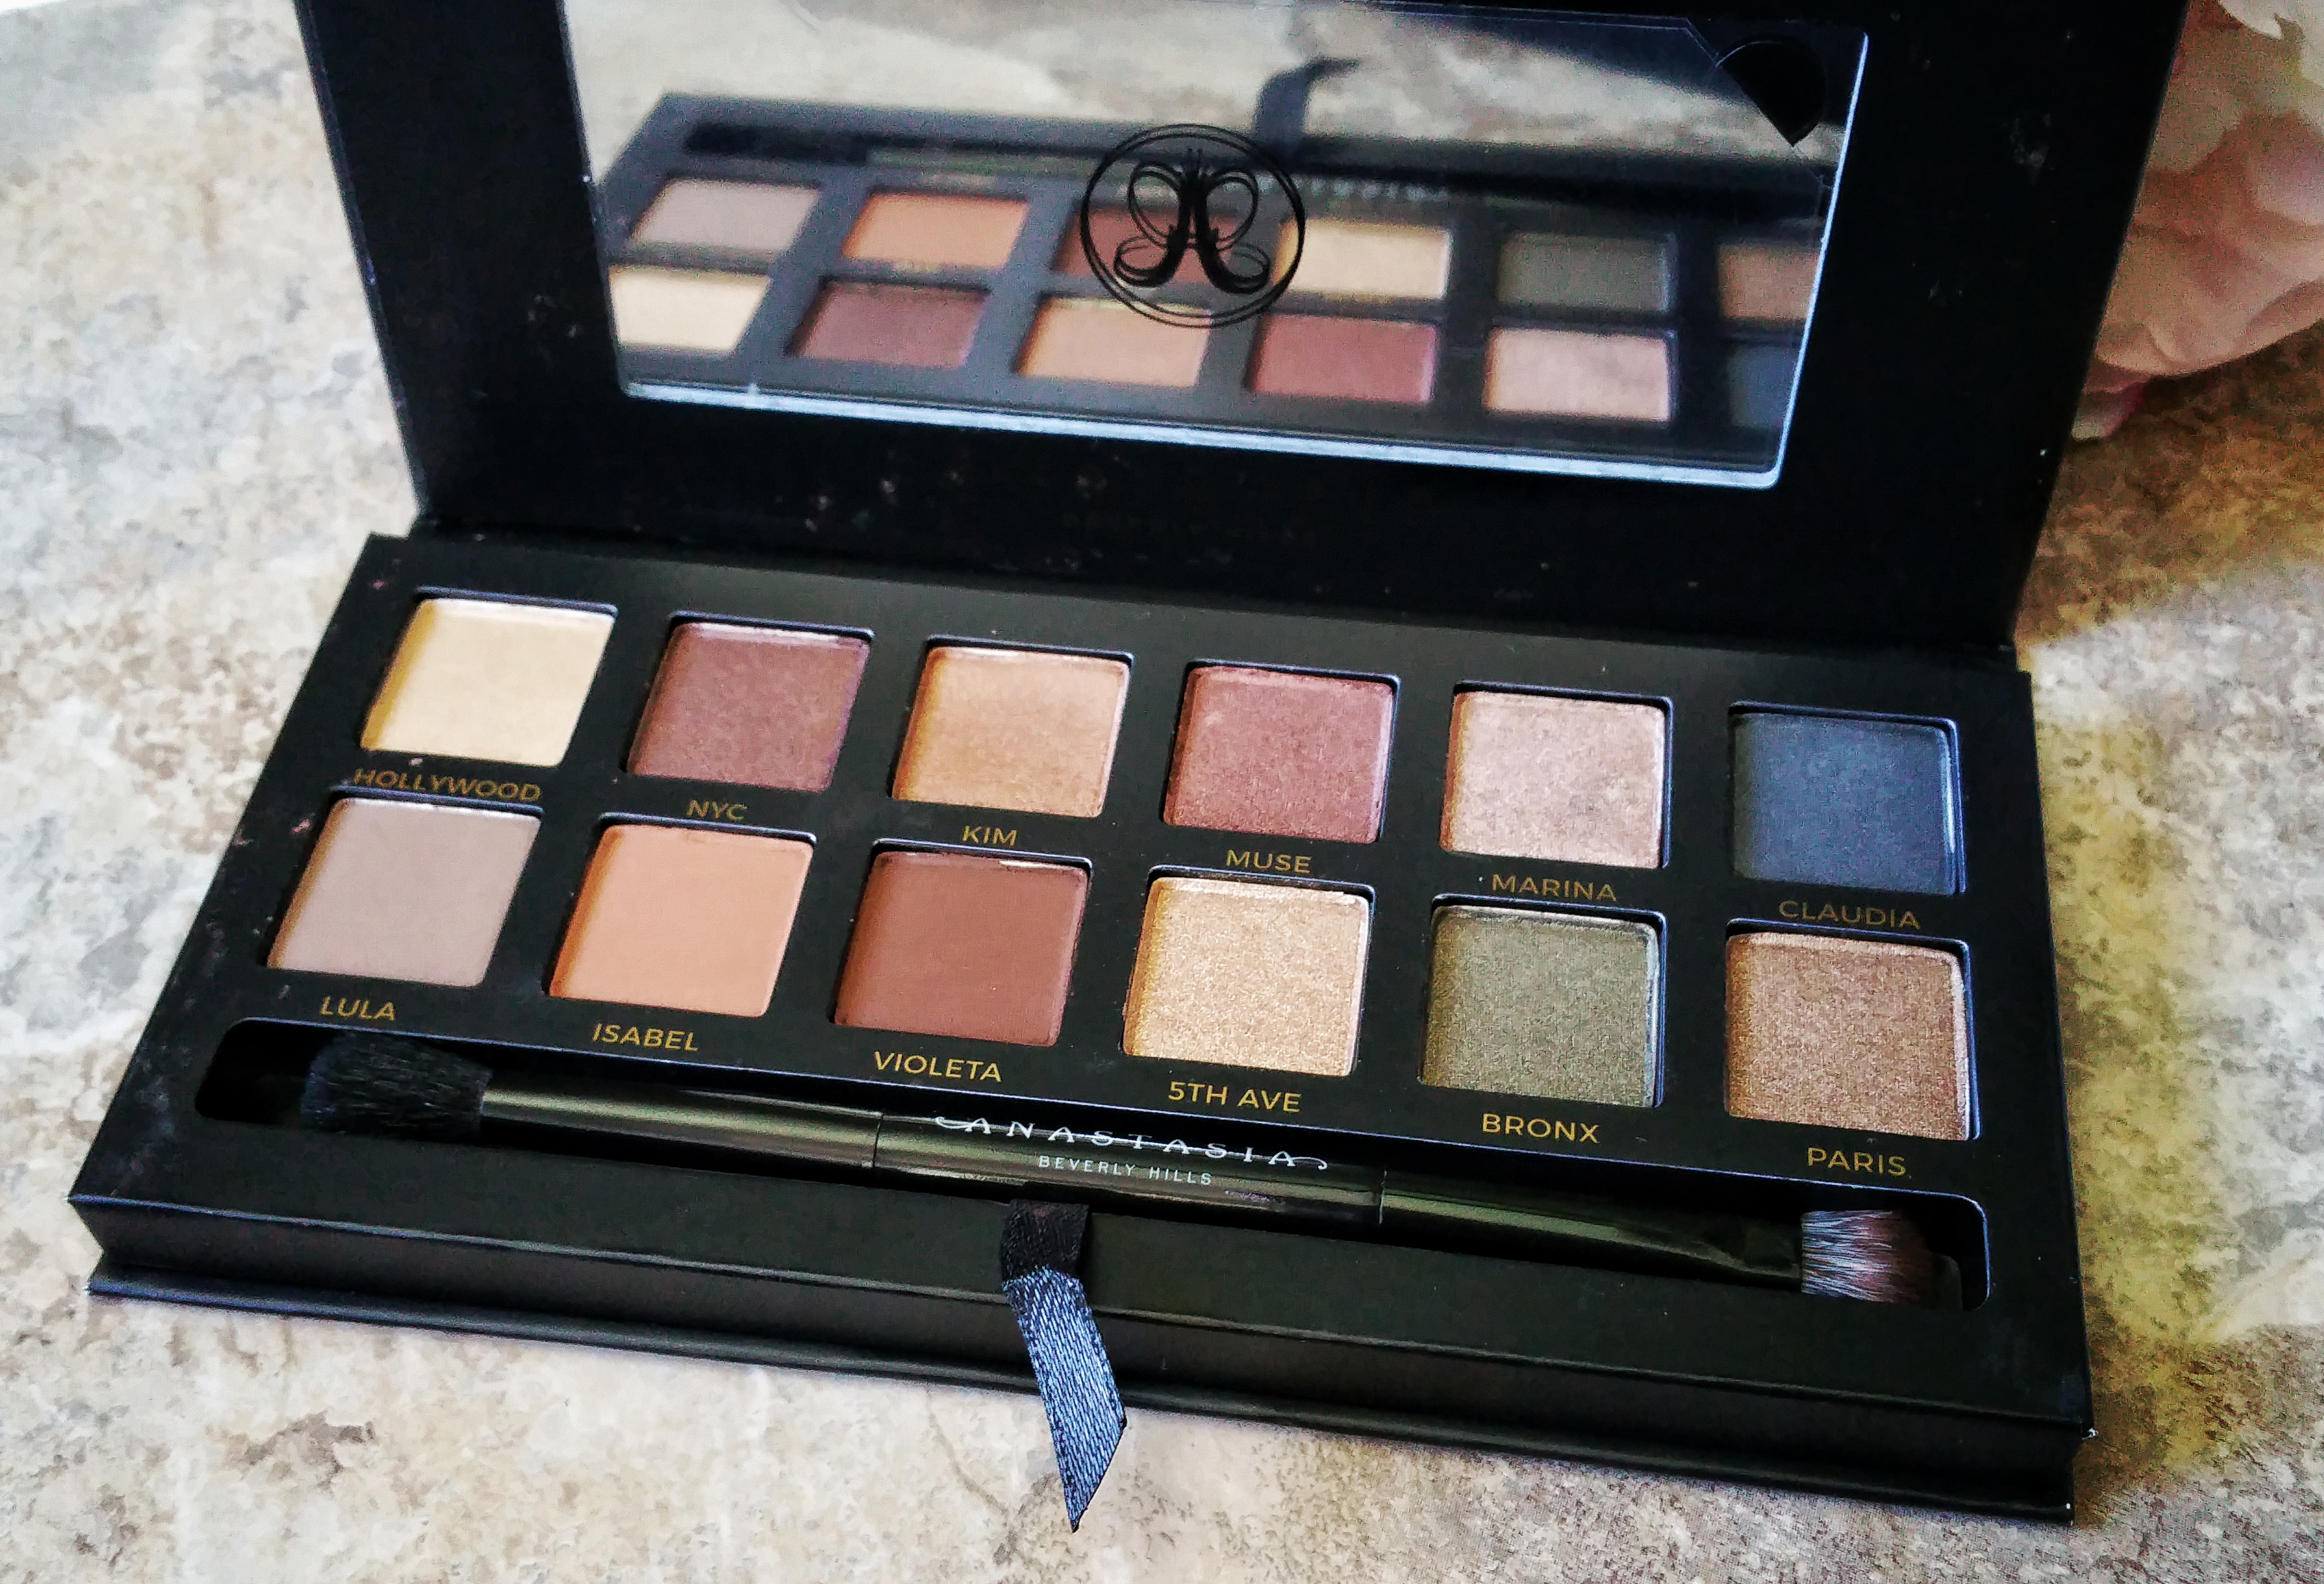 Mario Dedivanovic, Master Palette, The Master Palette by Makeup by Mario, Makeup by Mario Master Palette, Anastasia Beverly Hills, ABH, palette, eye shadow palette, makeup, beauty, swatches,